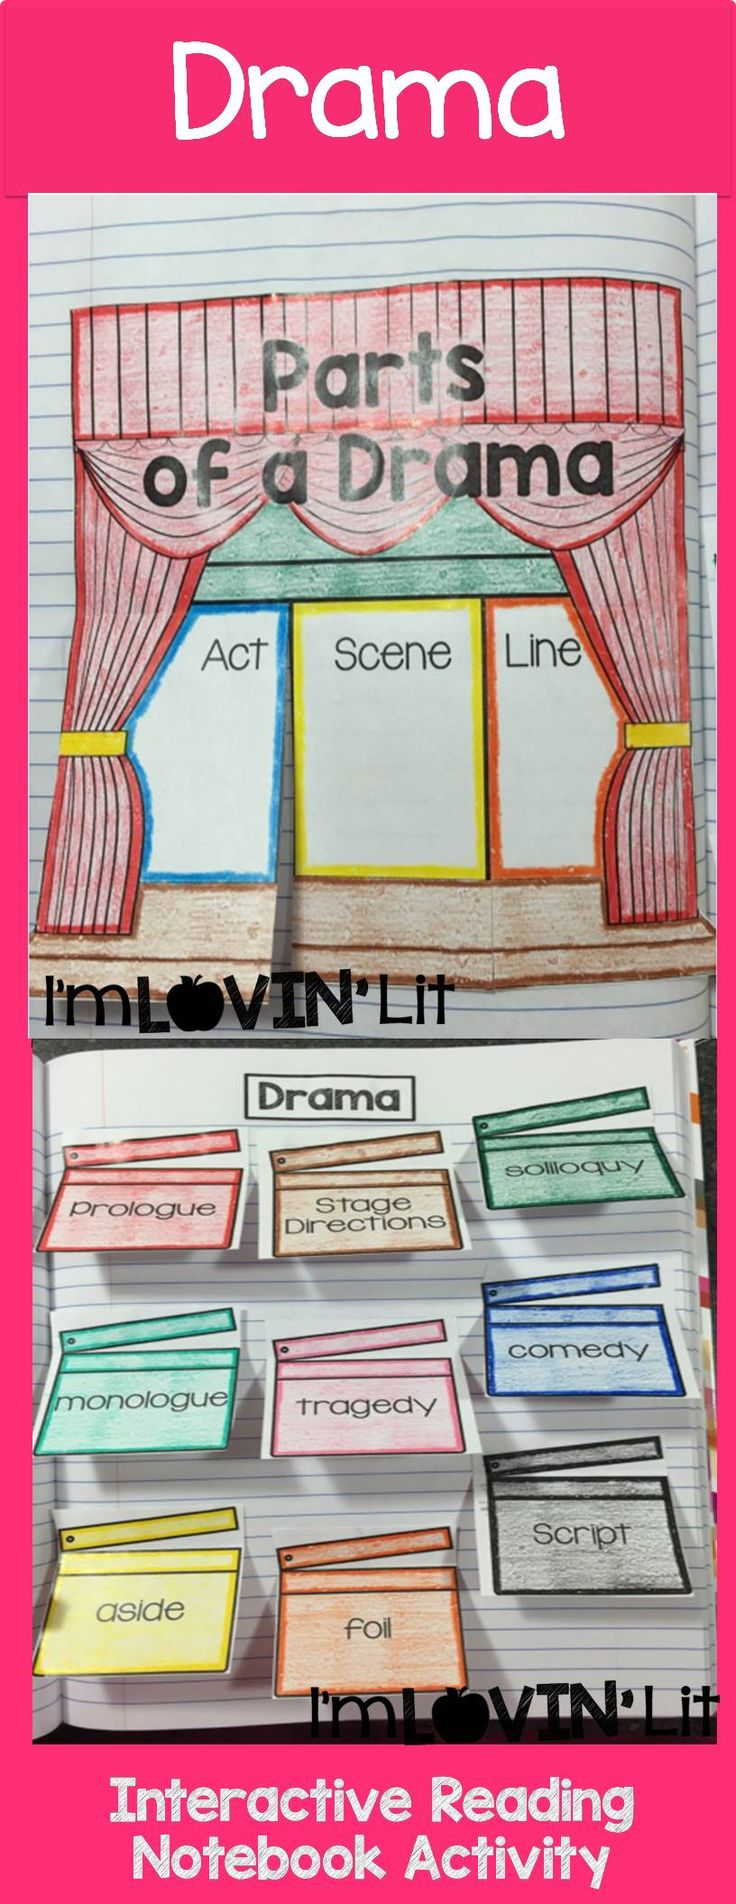 Drama Foldable, Drama Interactive Notebook Activity by Lovin' Lit from the ALL NEW Interactive Reading Literature Notebooks, Part 2